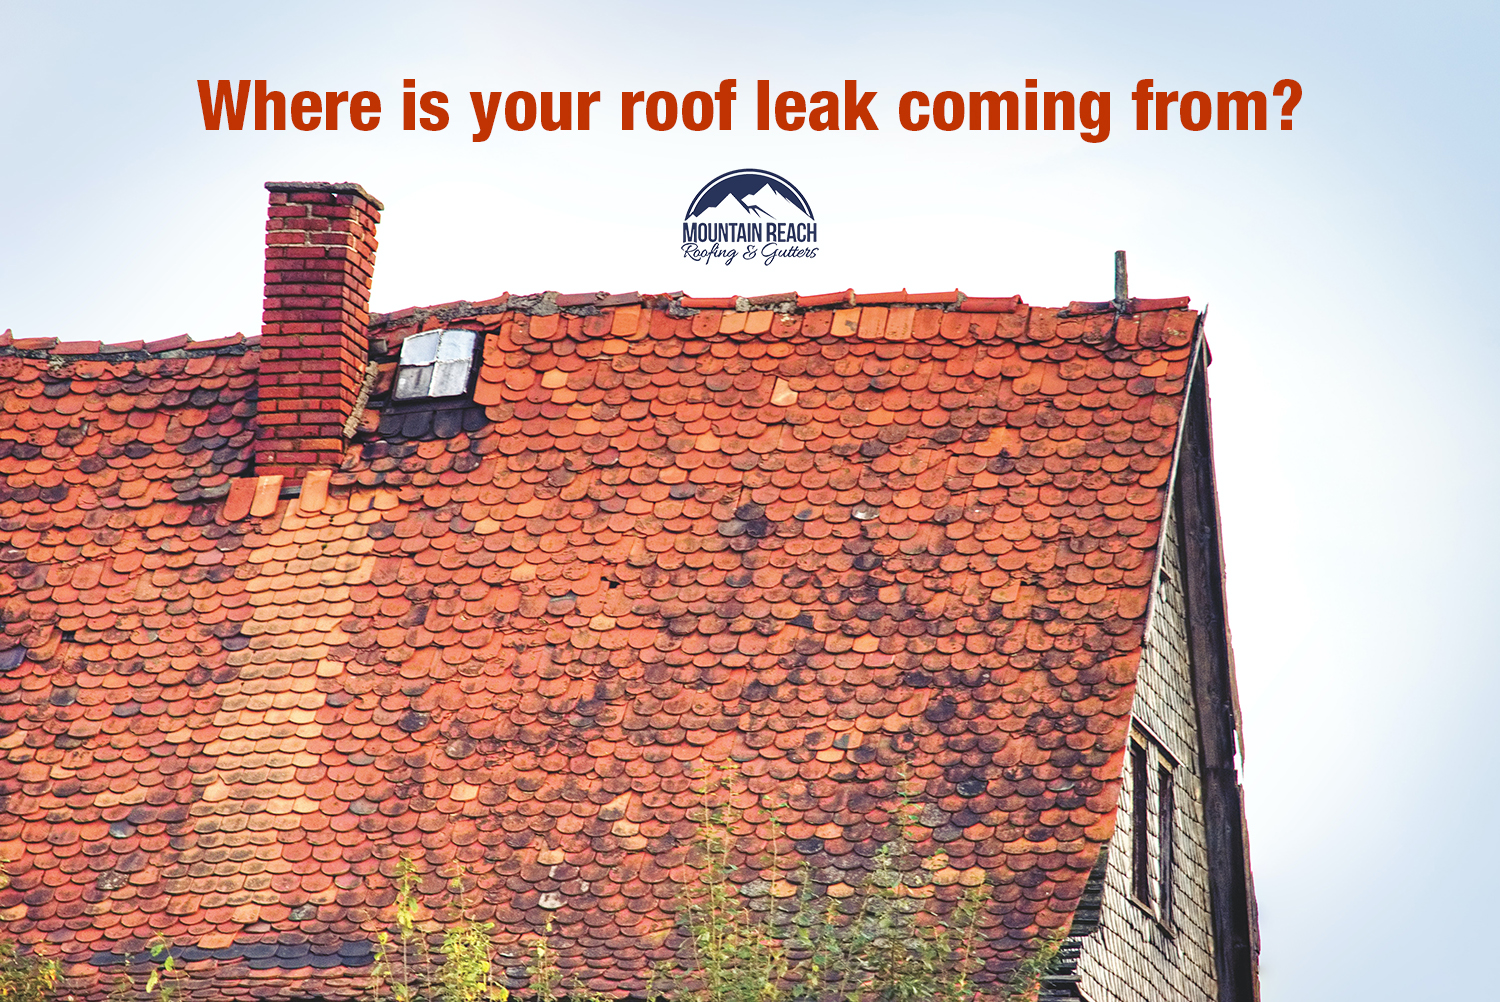 Where is your roof leak coming from?